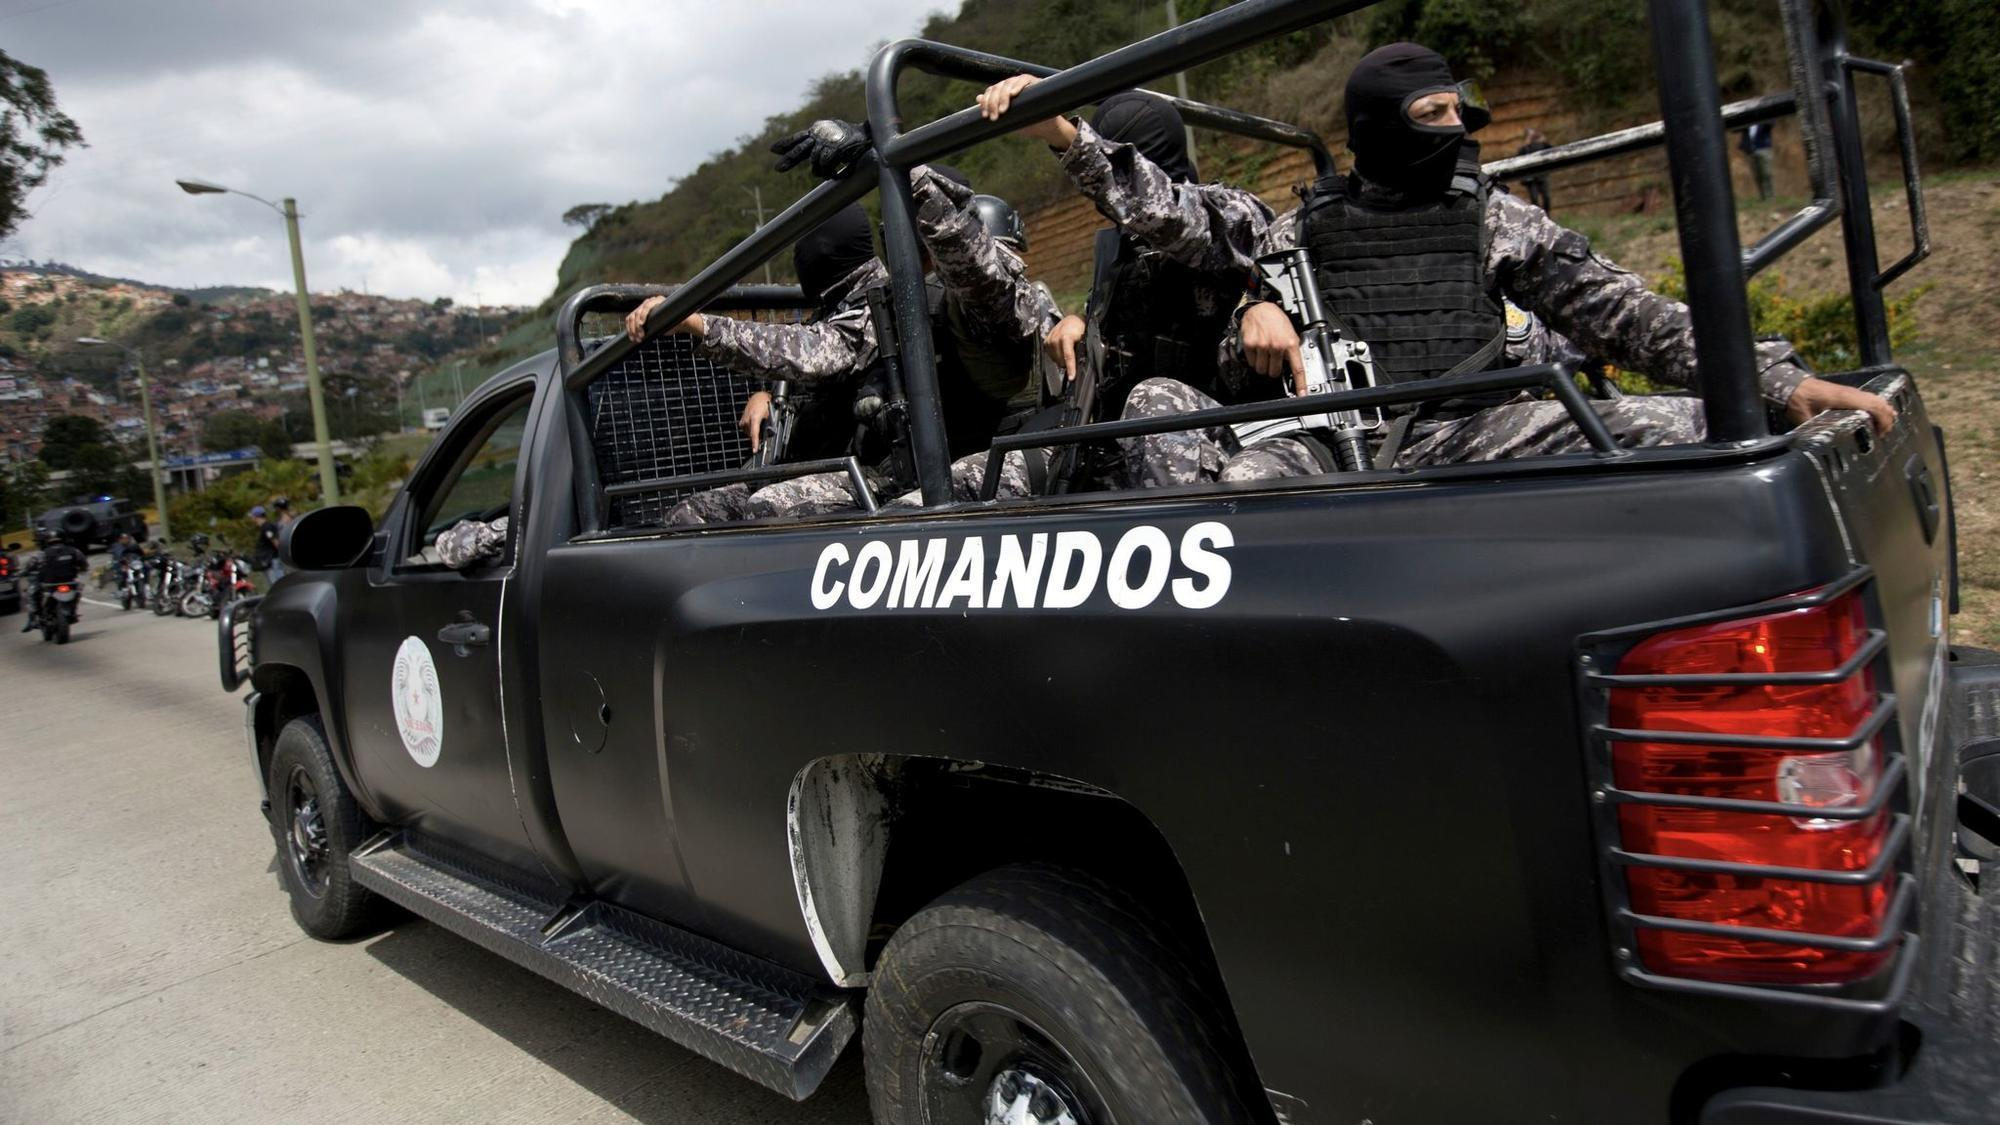 Rogue police officer known as Venezuelan Rambo is cornered by government